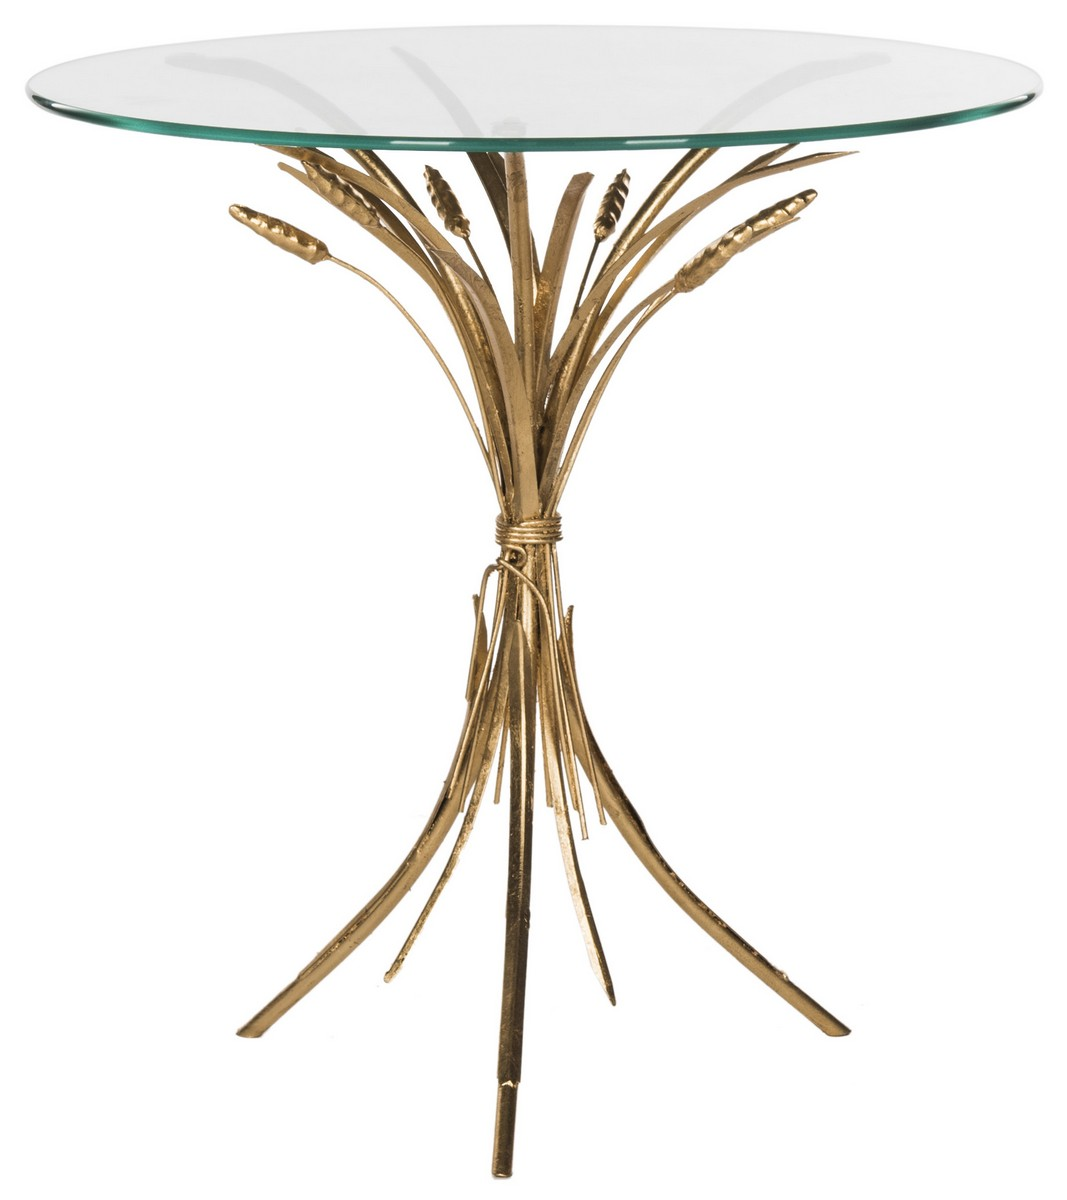 accent tables furniture safavieh front gold table share this product tin side plus tablet blue home accessories west elm floor cushion nautical chandelier light fixtures small